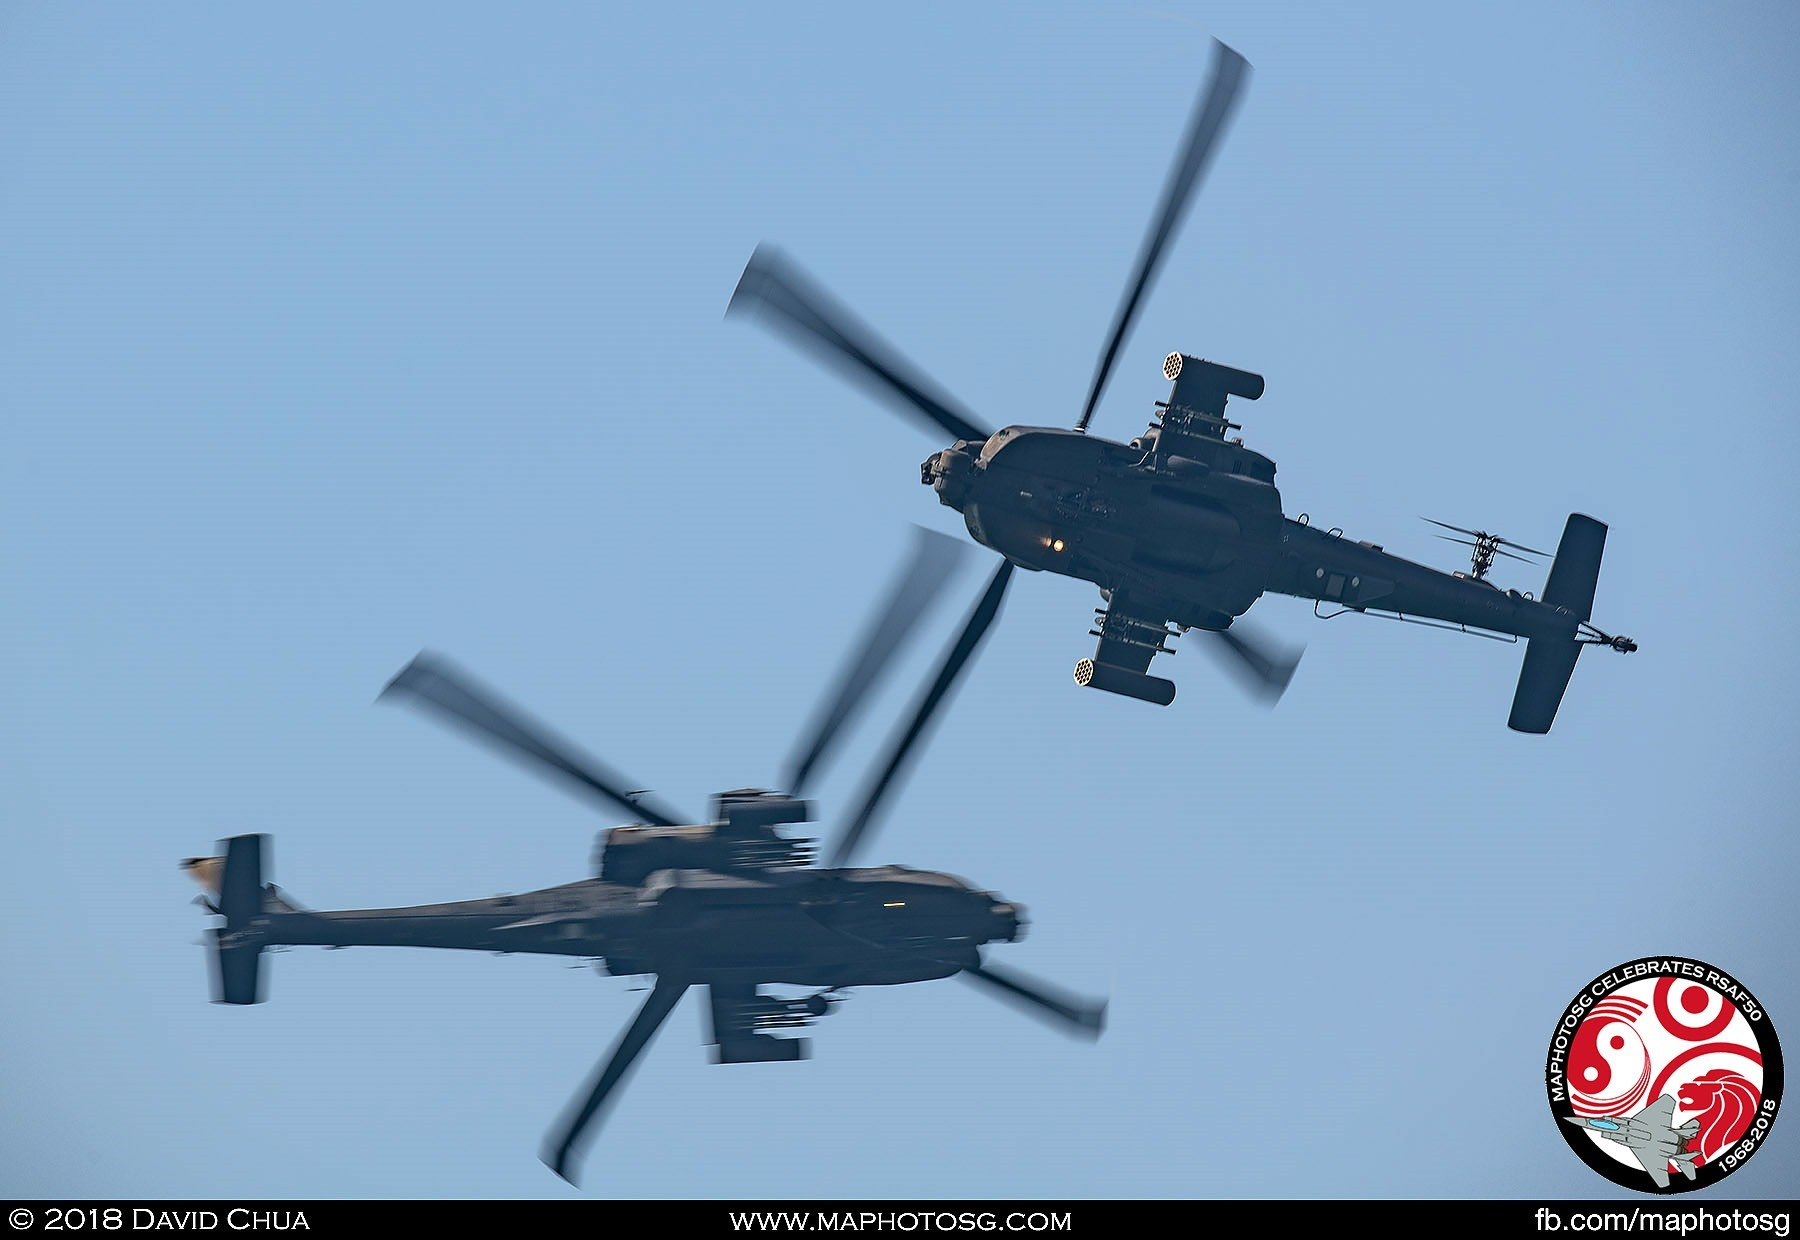 The two AH-64D helicopters break into each other and make a 90-degree turn as they approach the show centre to perform the Cross Dagger.